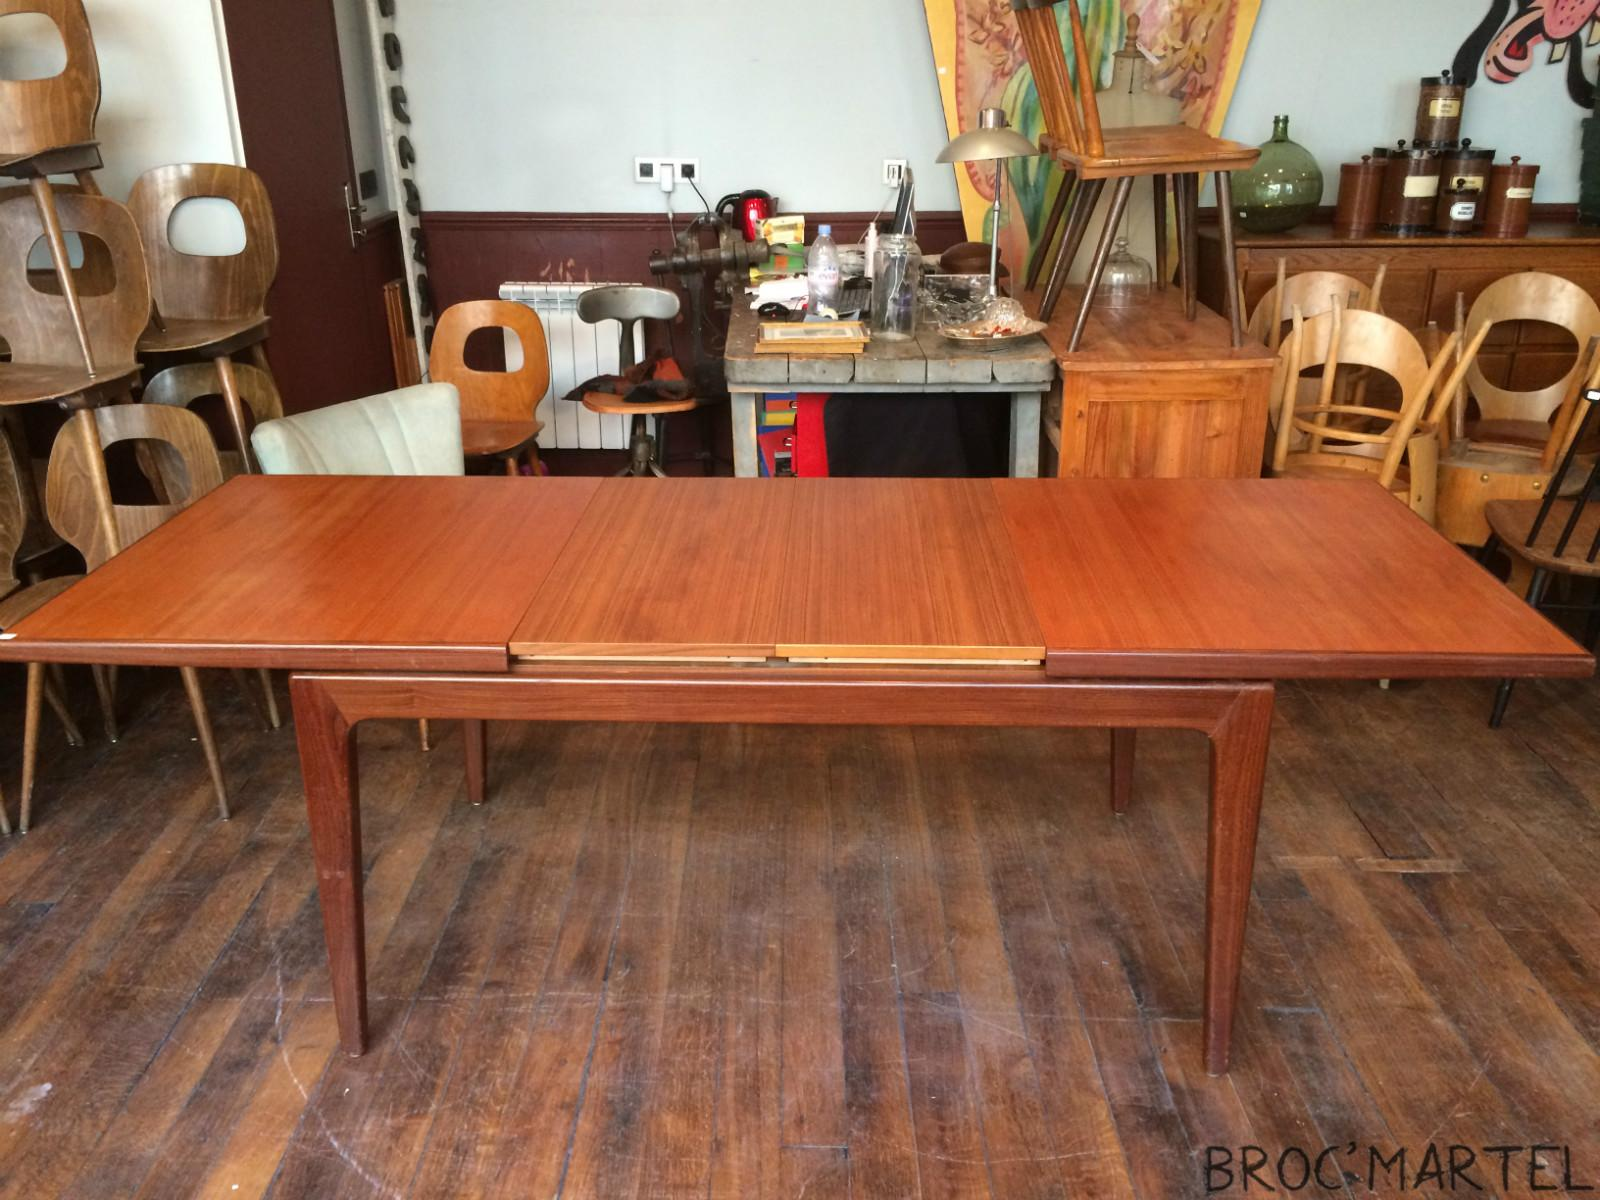 Table de salle manger scandinave en teck boutique for Table scandinave en teck